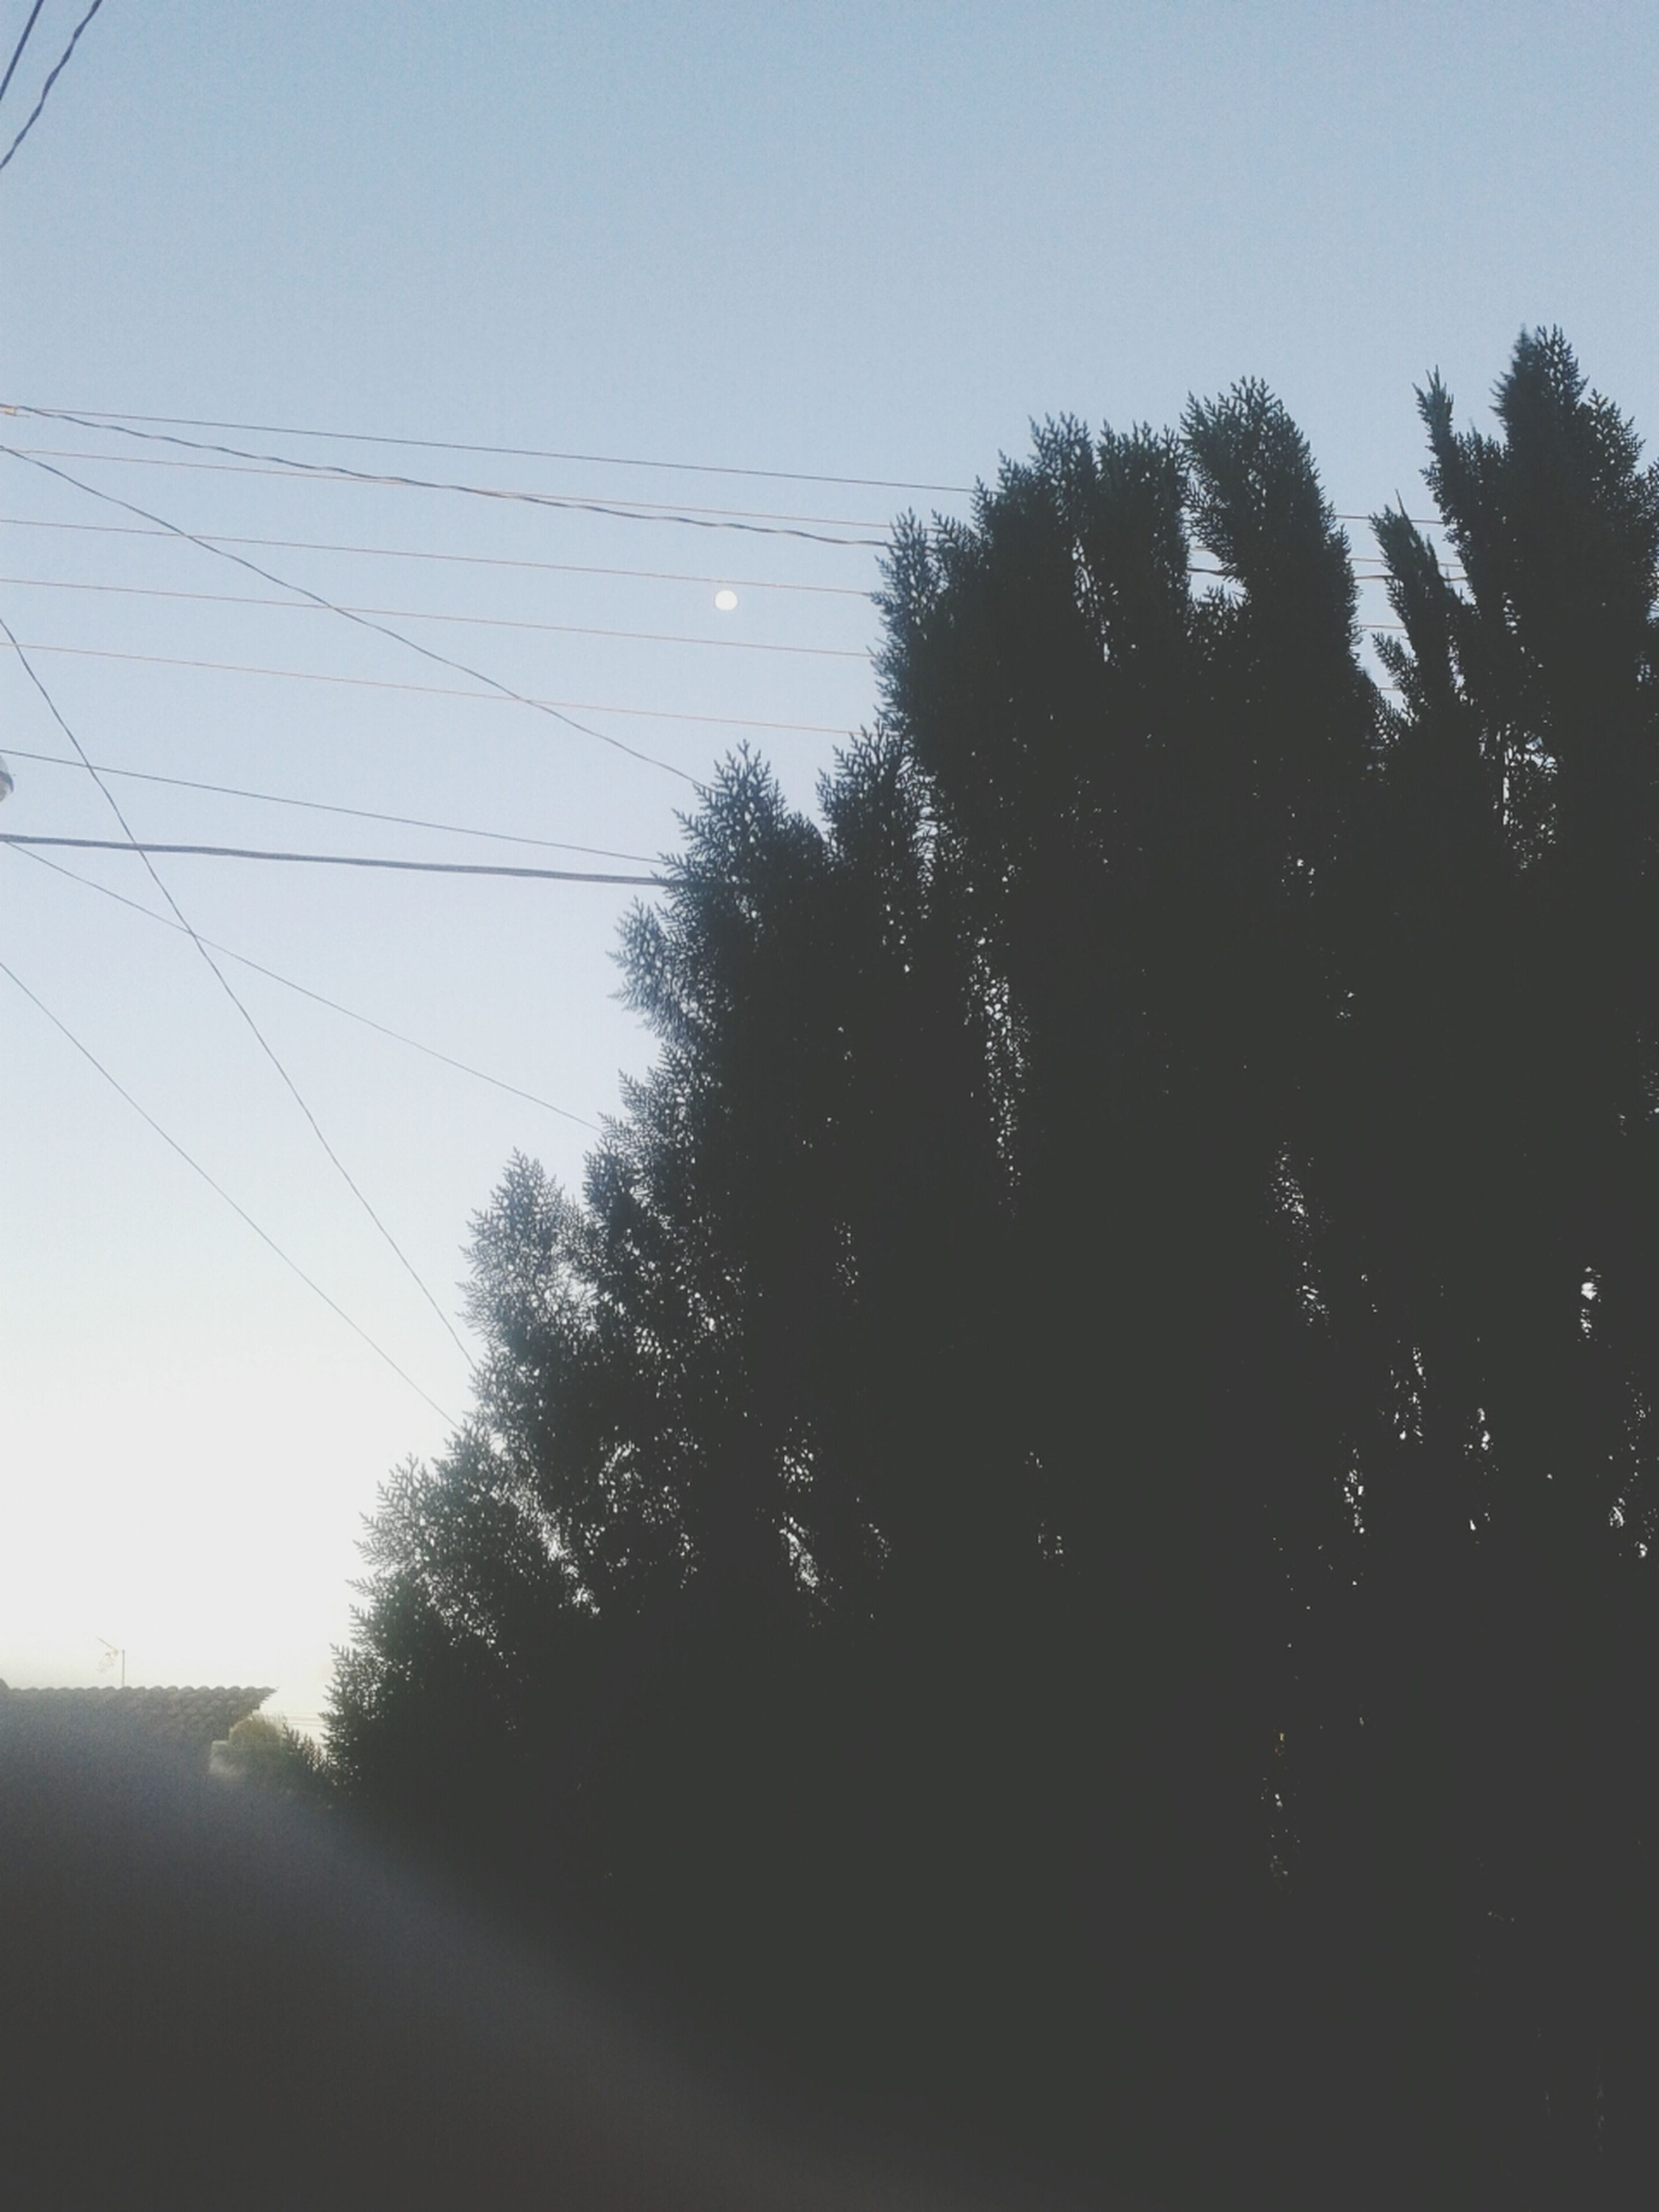 tree, silhouette, clear sky, low angle view, power line, sky, tranquility, nature, transportation, electricity pylon, connection, growth, cable, electricity, tranquil scene, outdoors, dusk, no people, beauty in nature, street light